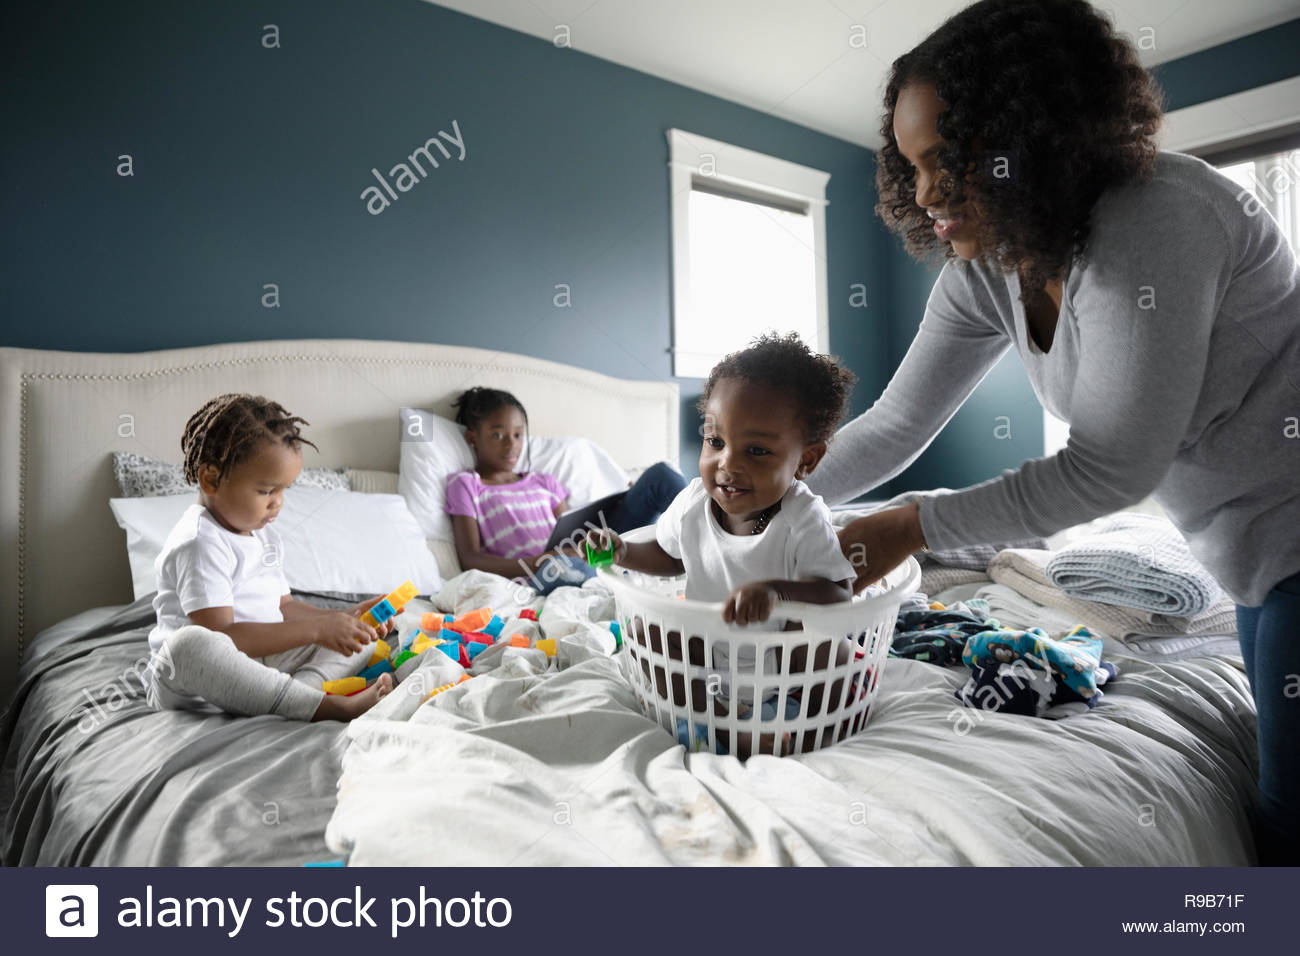 Playful mother placing baby son in laundry basket on bed - Stock Image